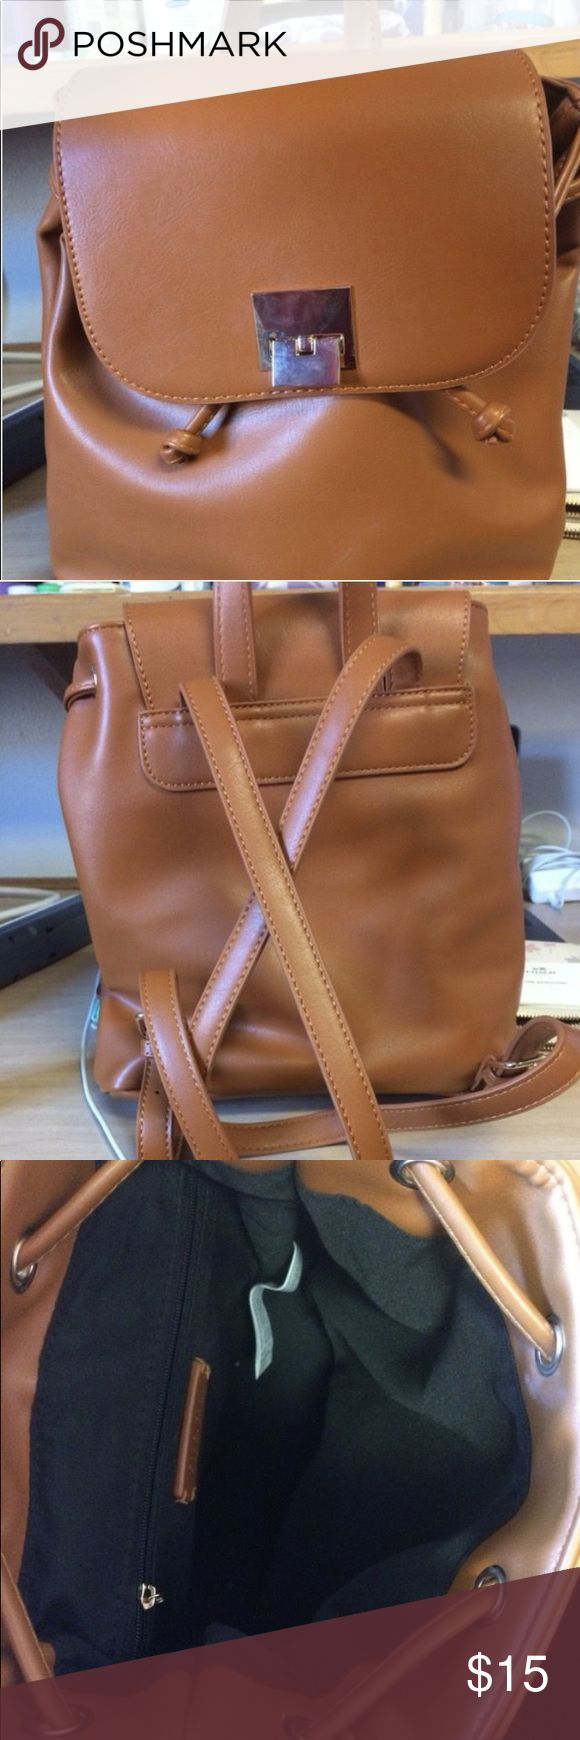 1 year old Forever 21 nude backpack purse Backpack, purse, tan, 1 year old, barely used Forever 21 Bags Backpacks